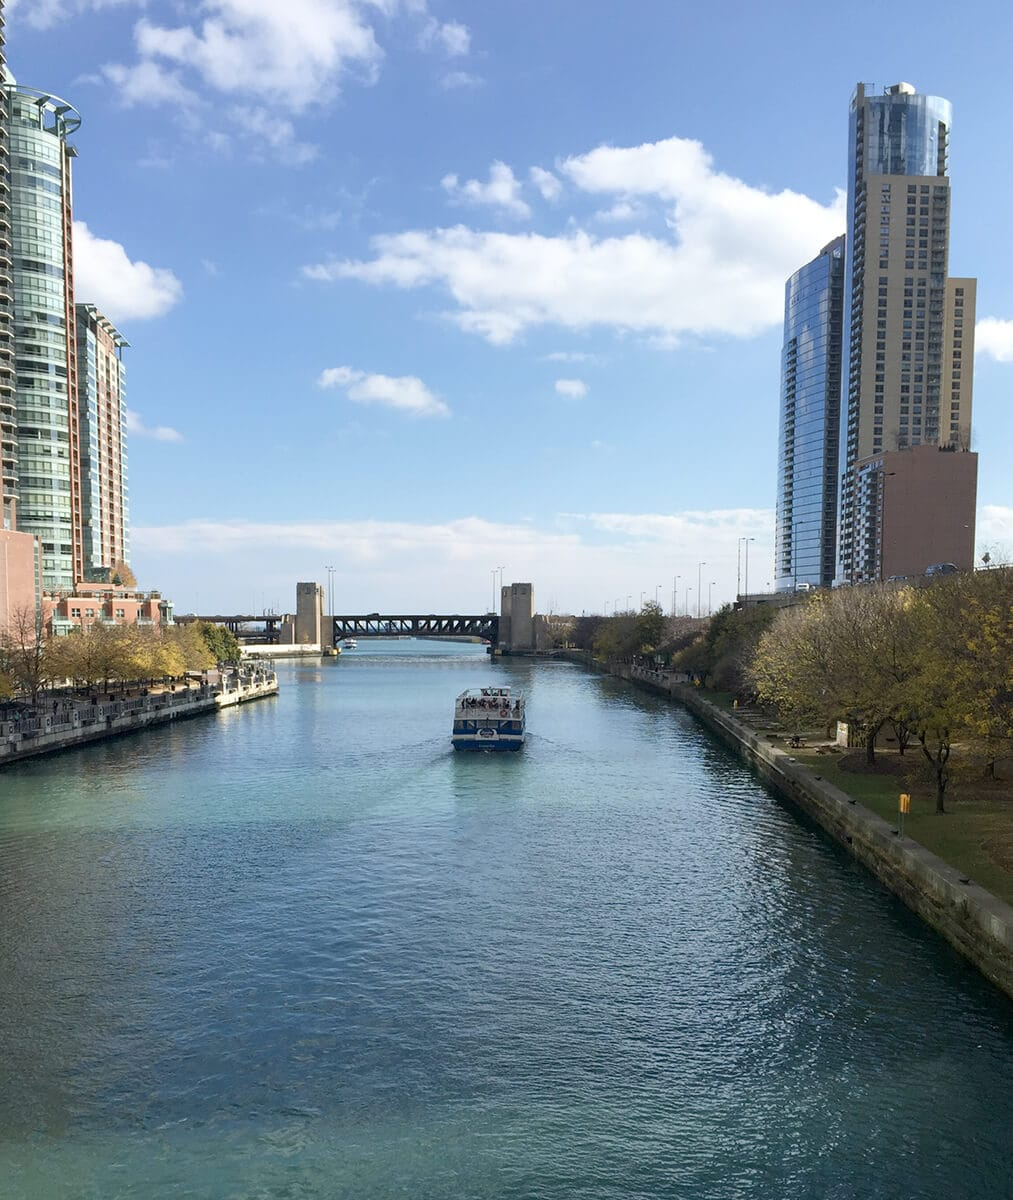 view of the chicago river with a boat